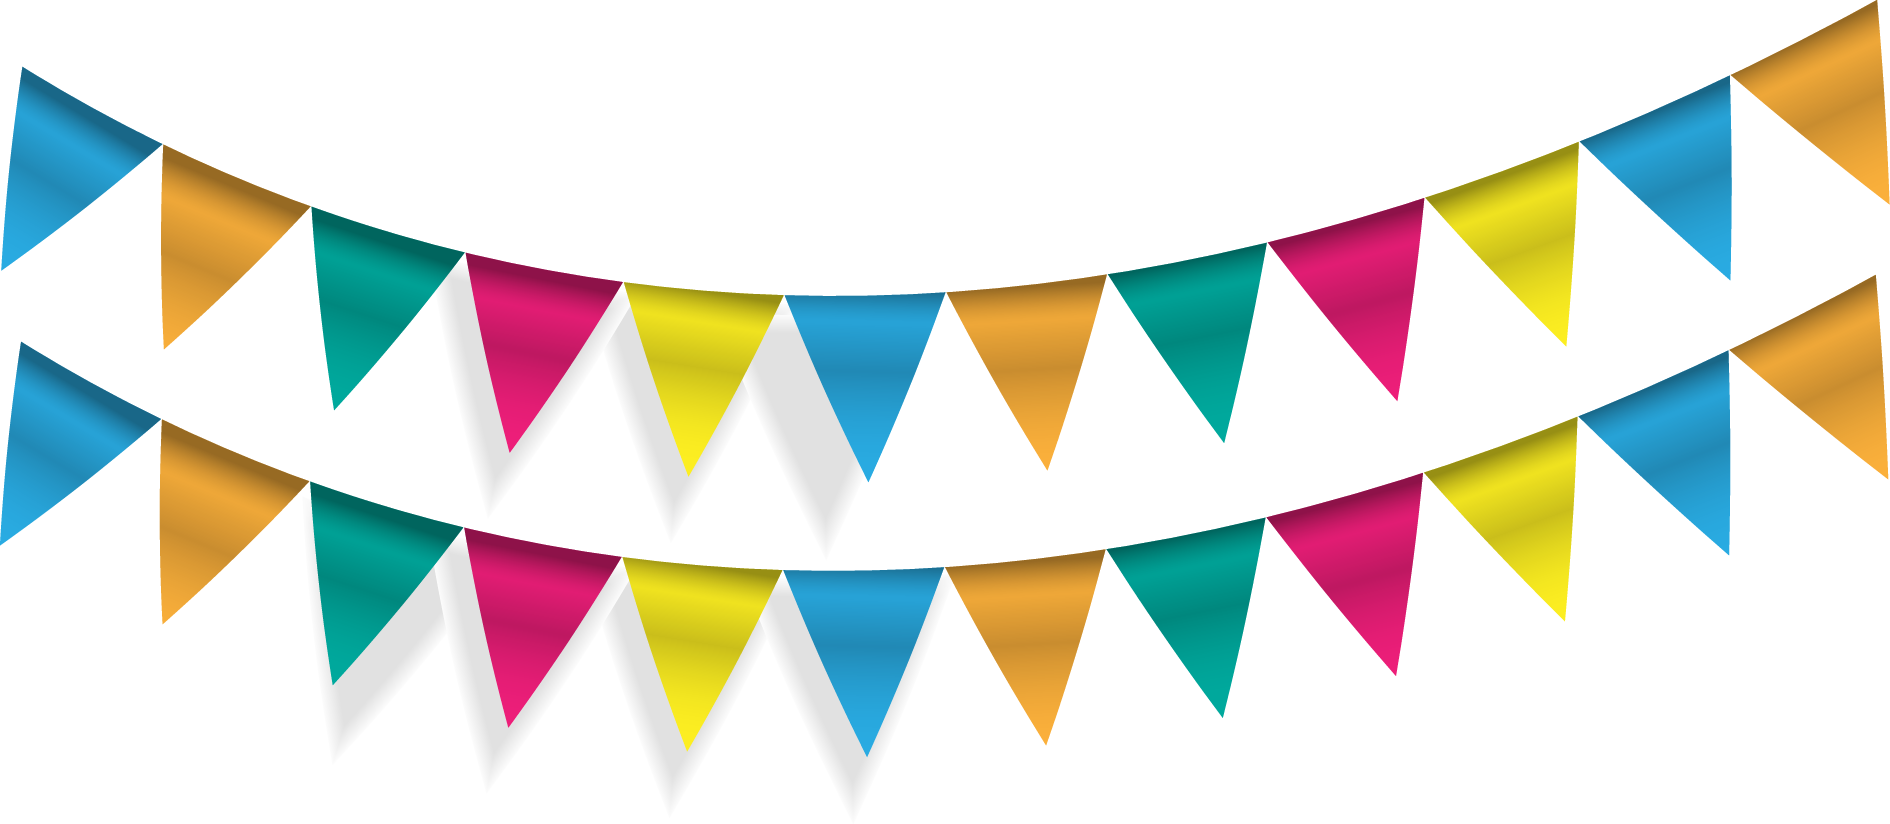 Party bunting png. Pennon flag banner vector